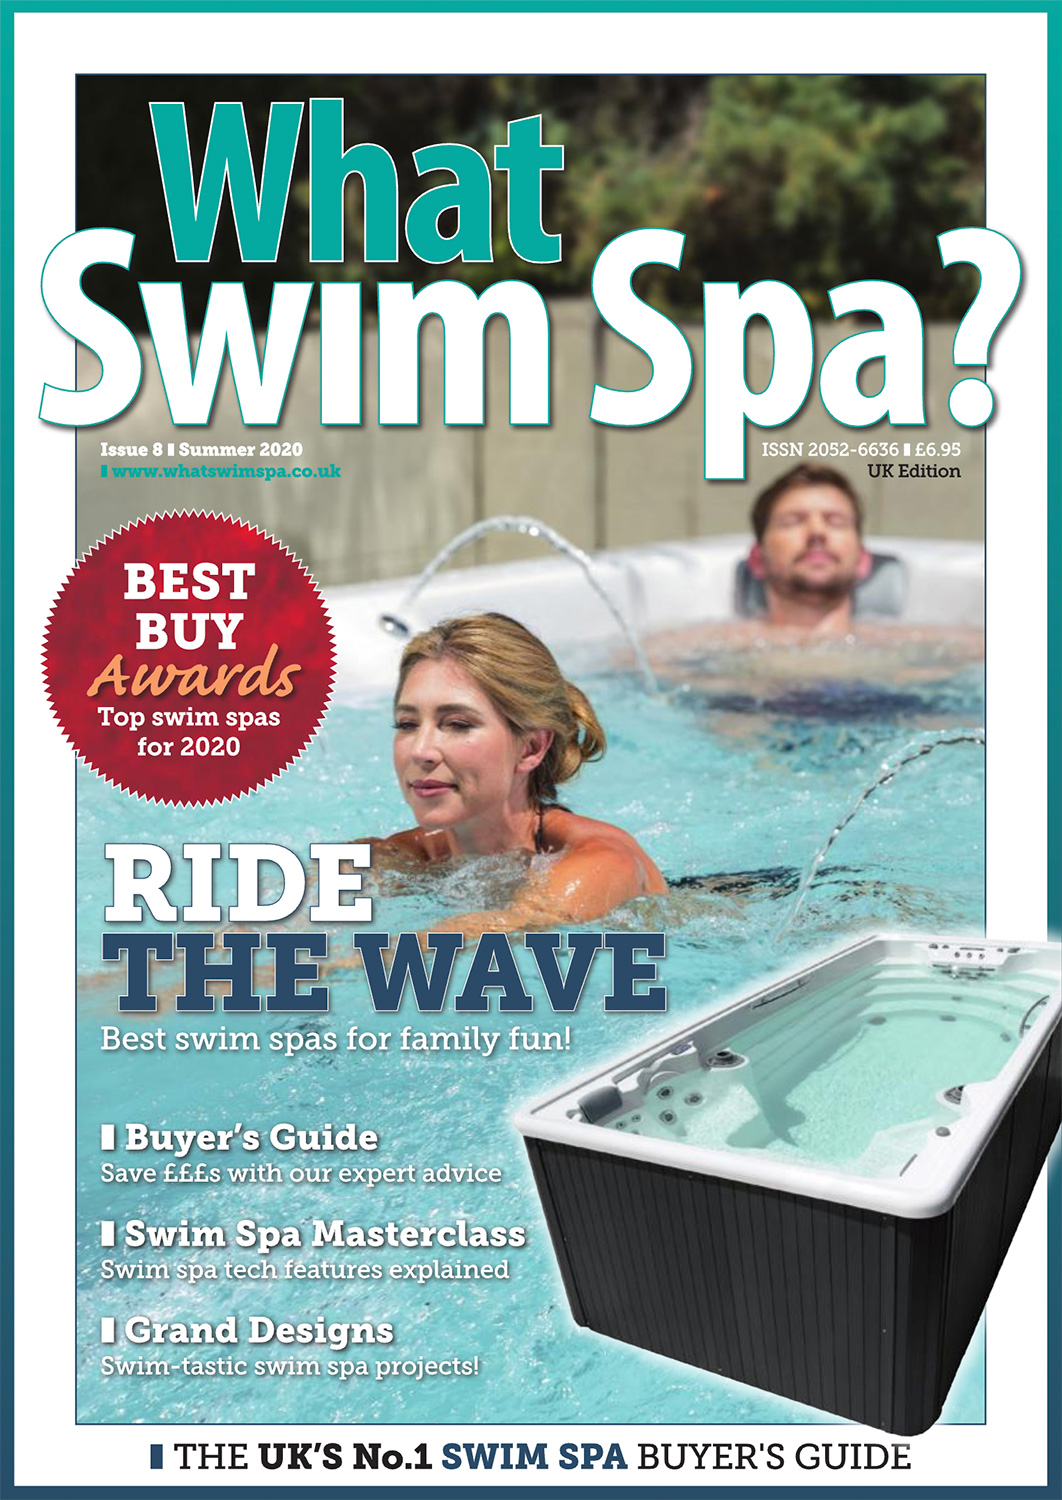 WhatSwimSpa? Magazine Summer 2020